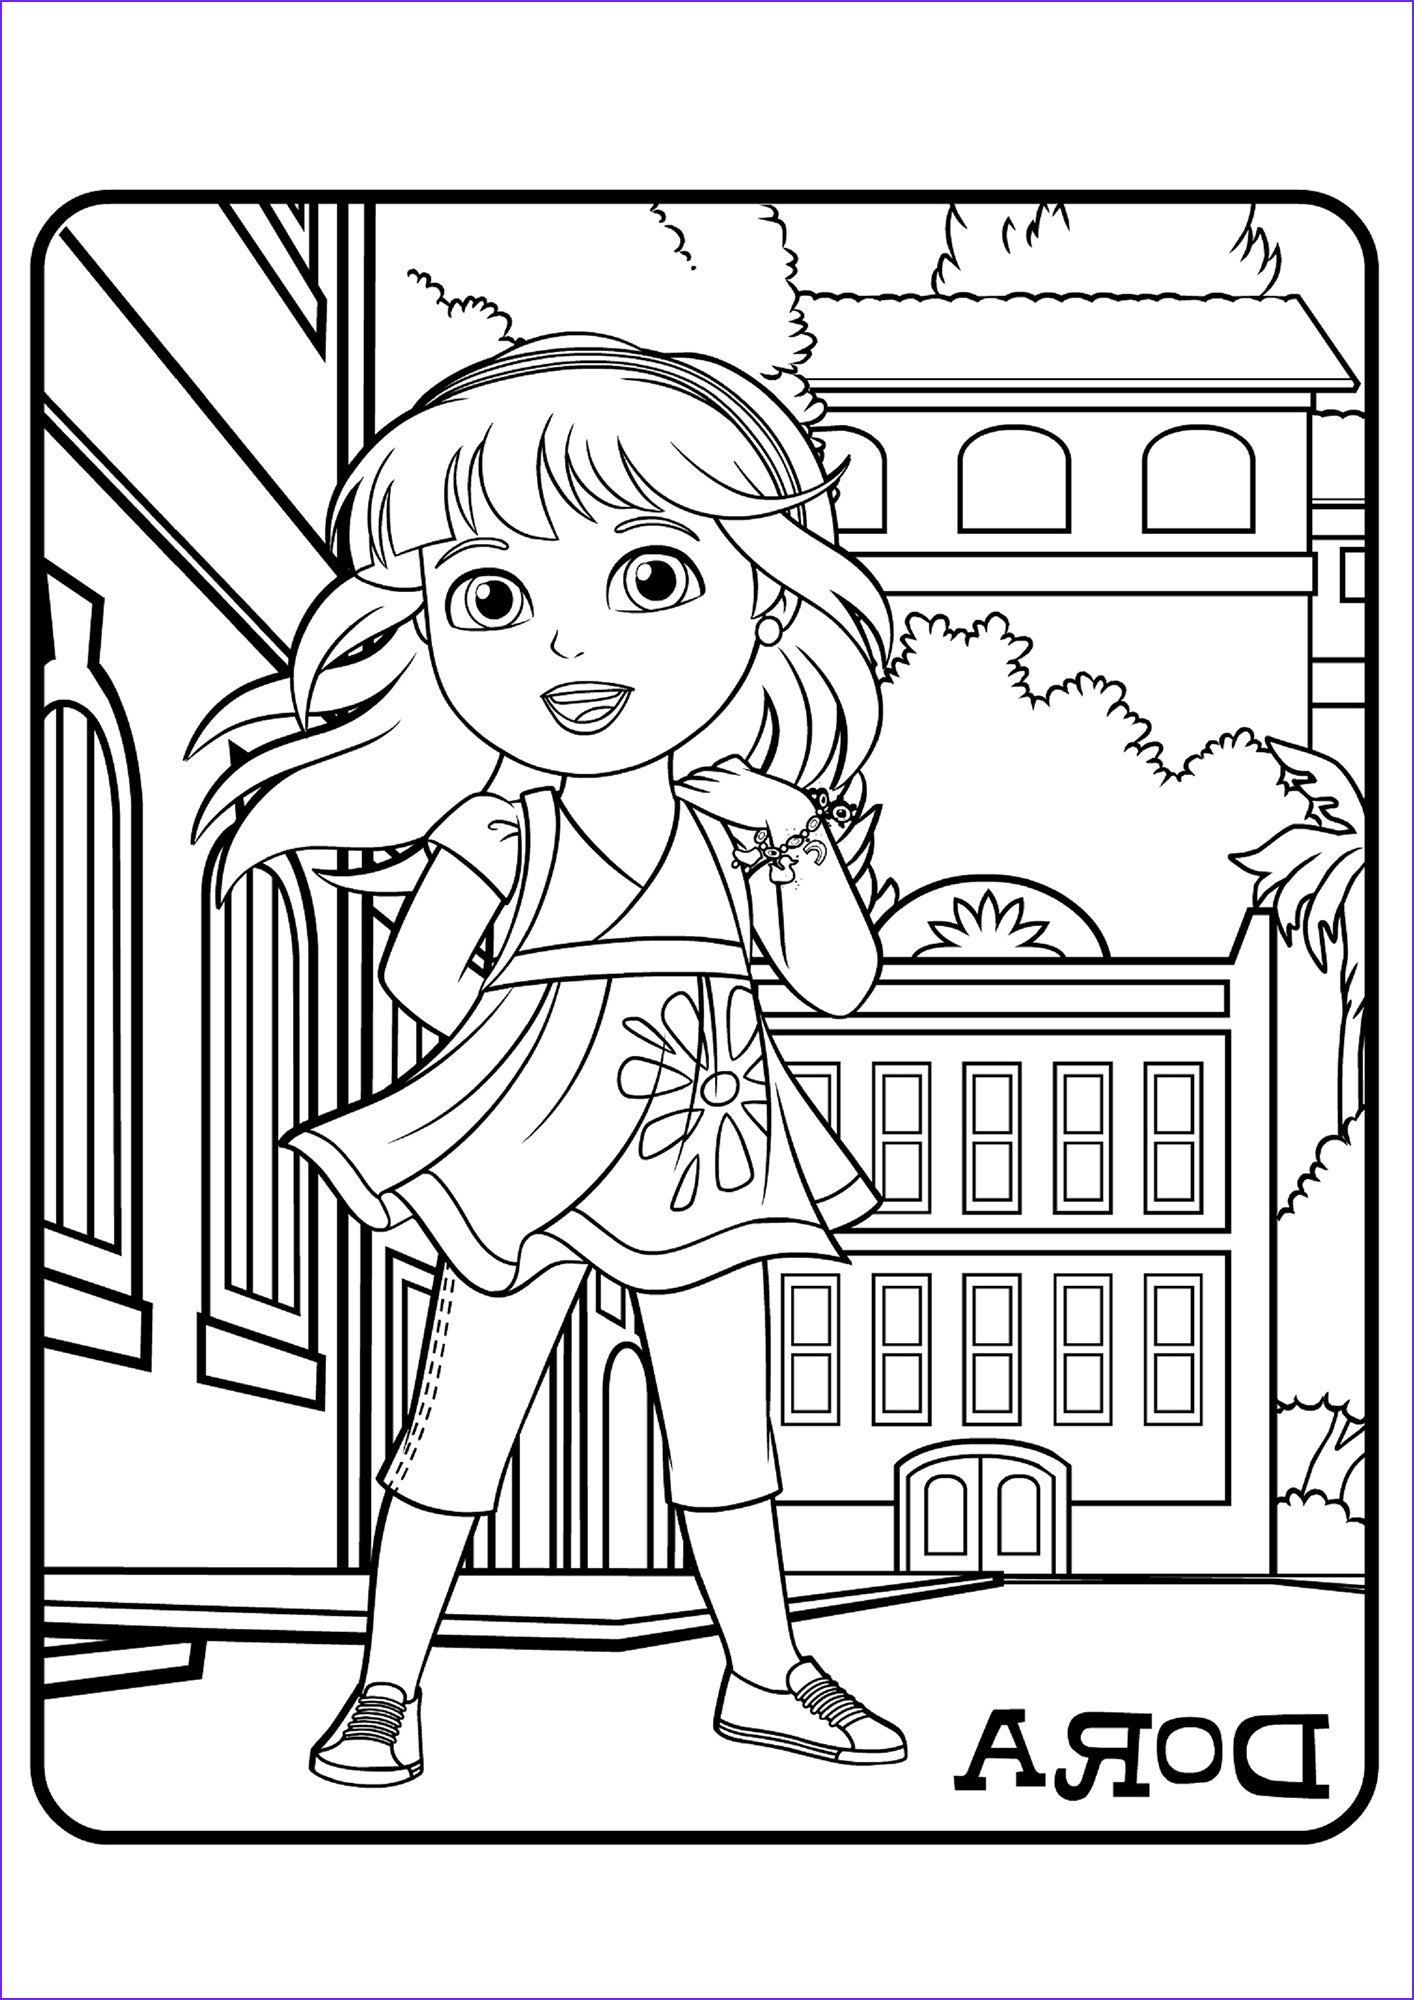 Friends Coloring Pages Luxury Photos Dora and Friends Coloring Pages to and Print for Free